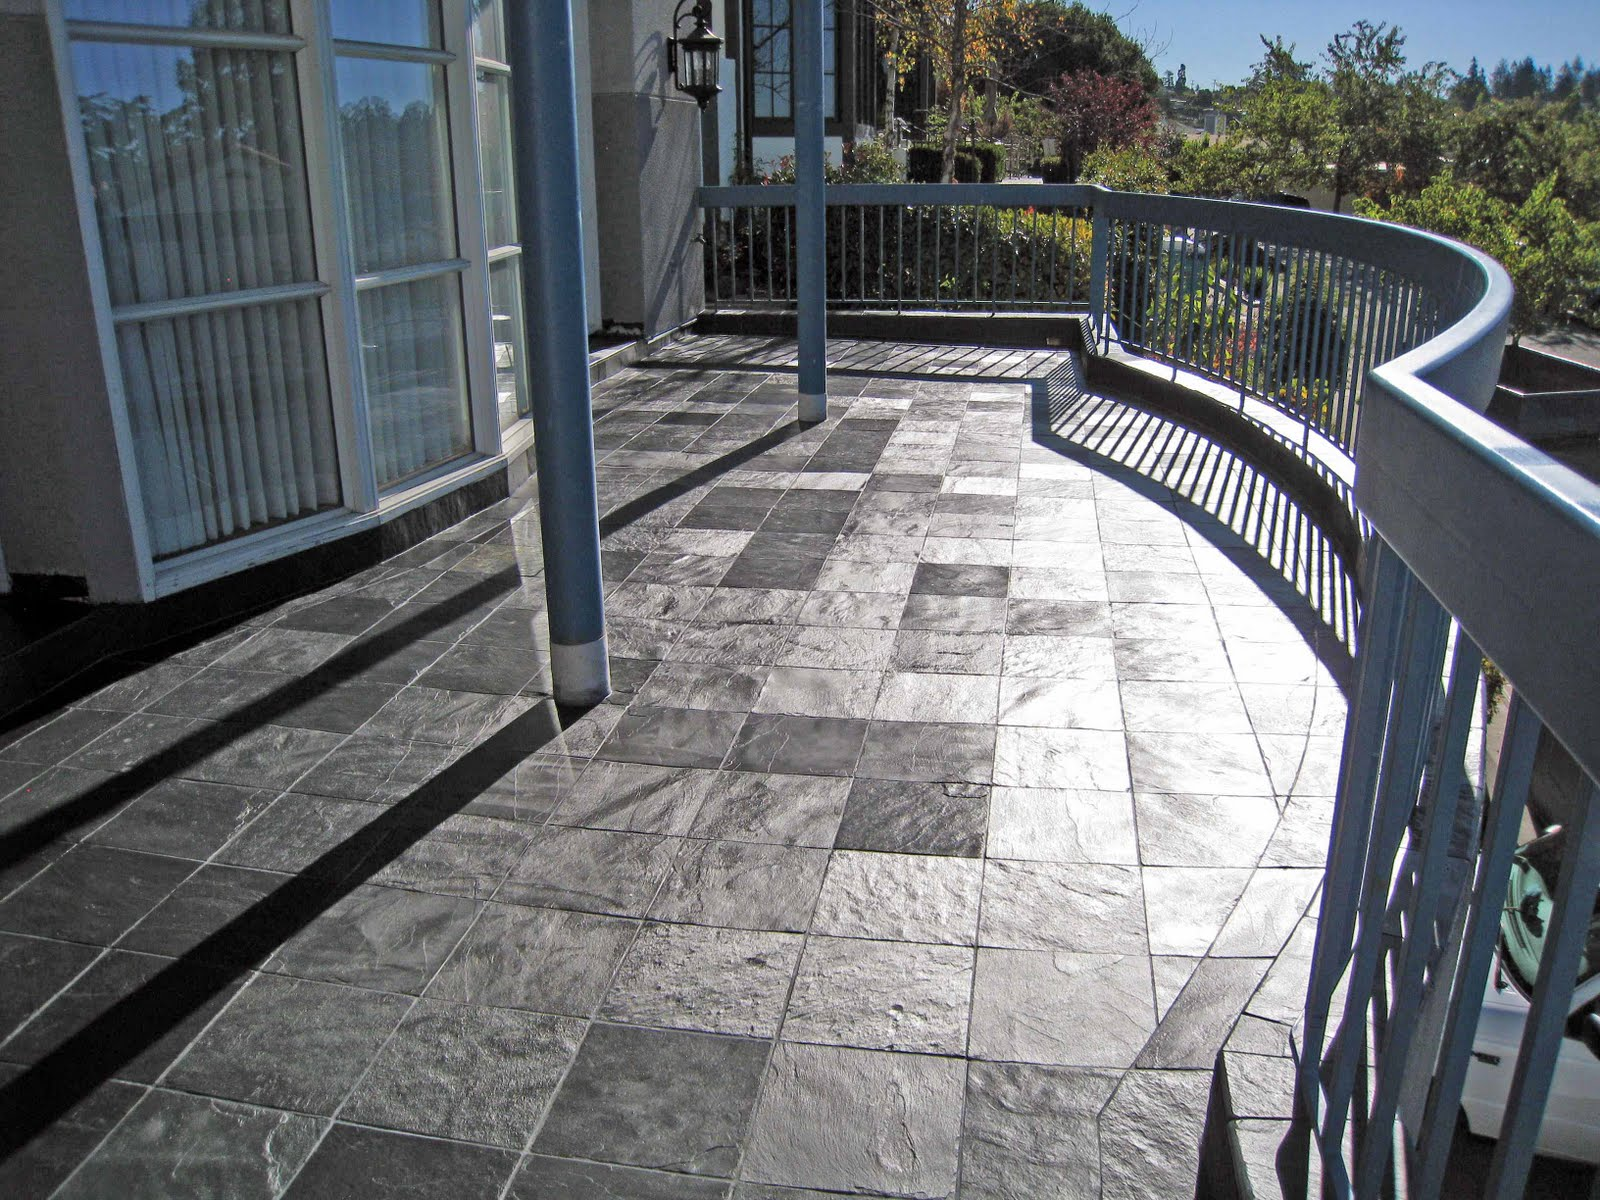 Porcelain/Stone Tile On Outdoor Decks Over Living Space   White Paper